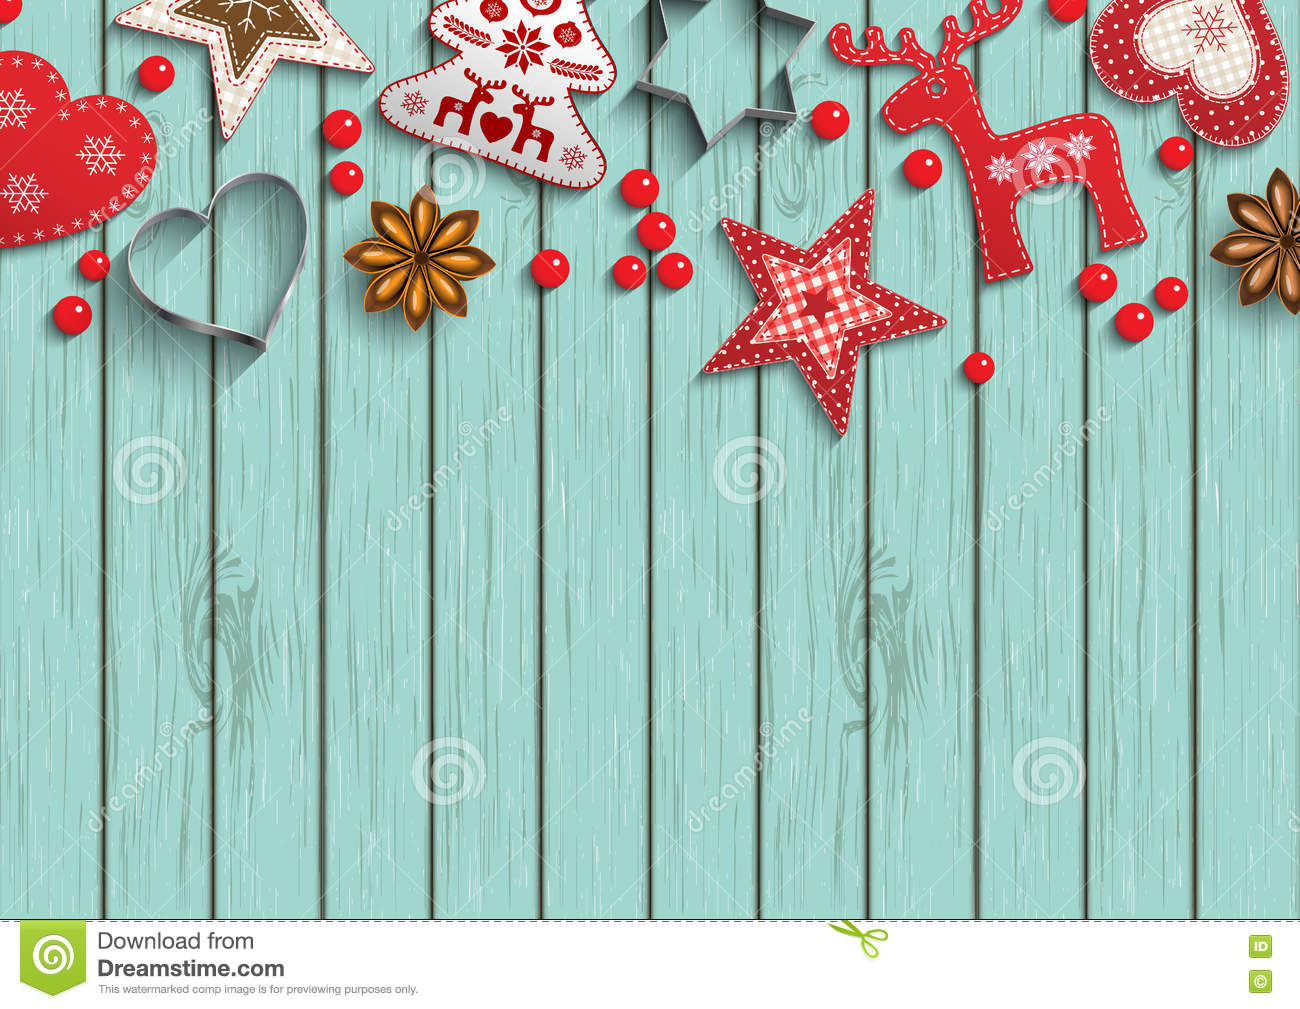 Christmas background, small scandinavian styled decorations lying on polka dot patterned backdrop, illustration